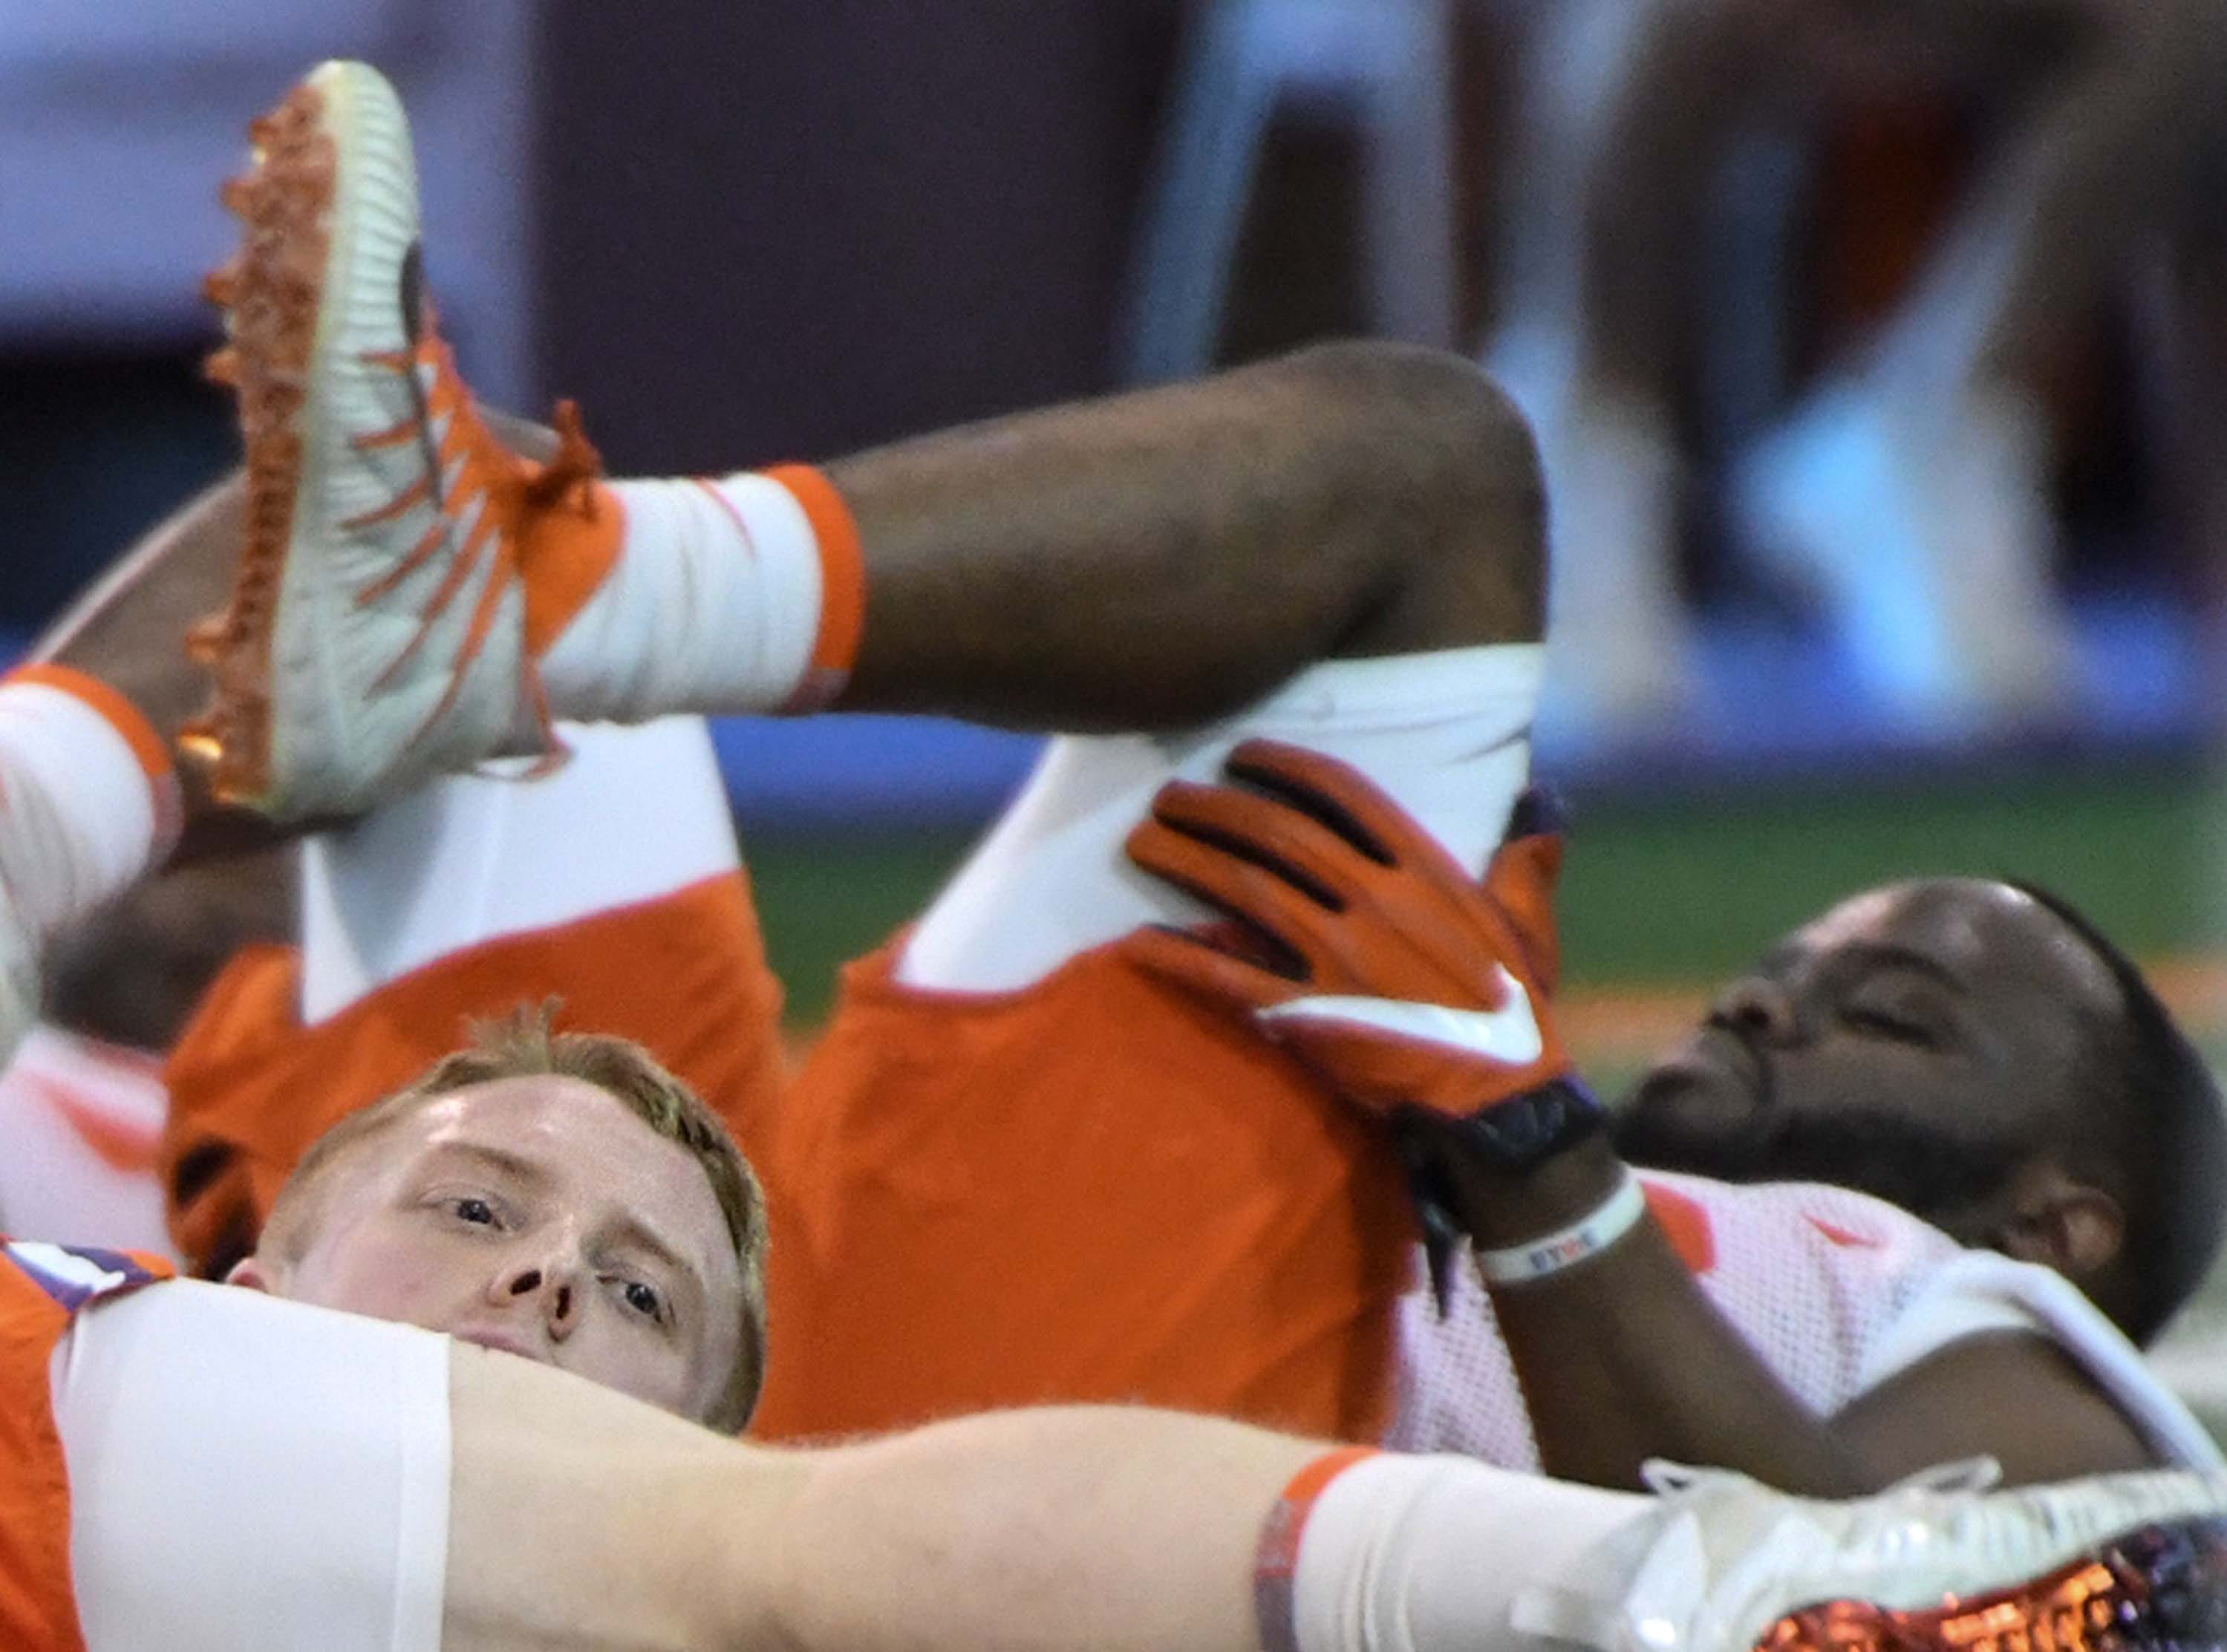 Clemson linebacker Jake Venables (15) stretches during the first practice at the Clemson Indoor Practice Facility in Clemson Wednesday, February 27, 2019.